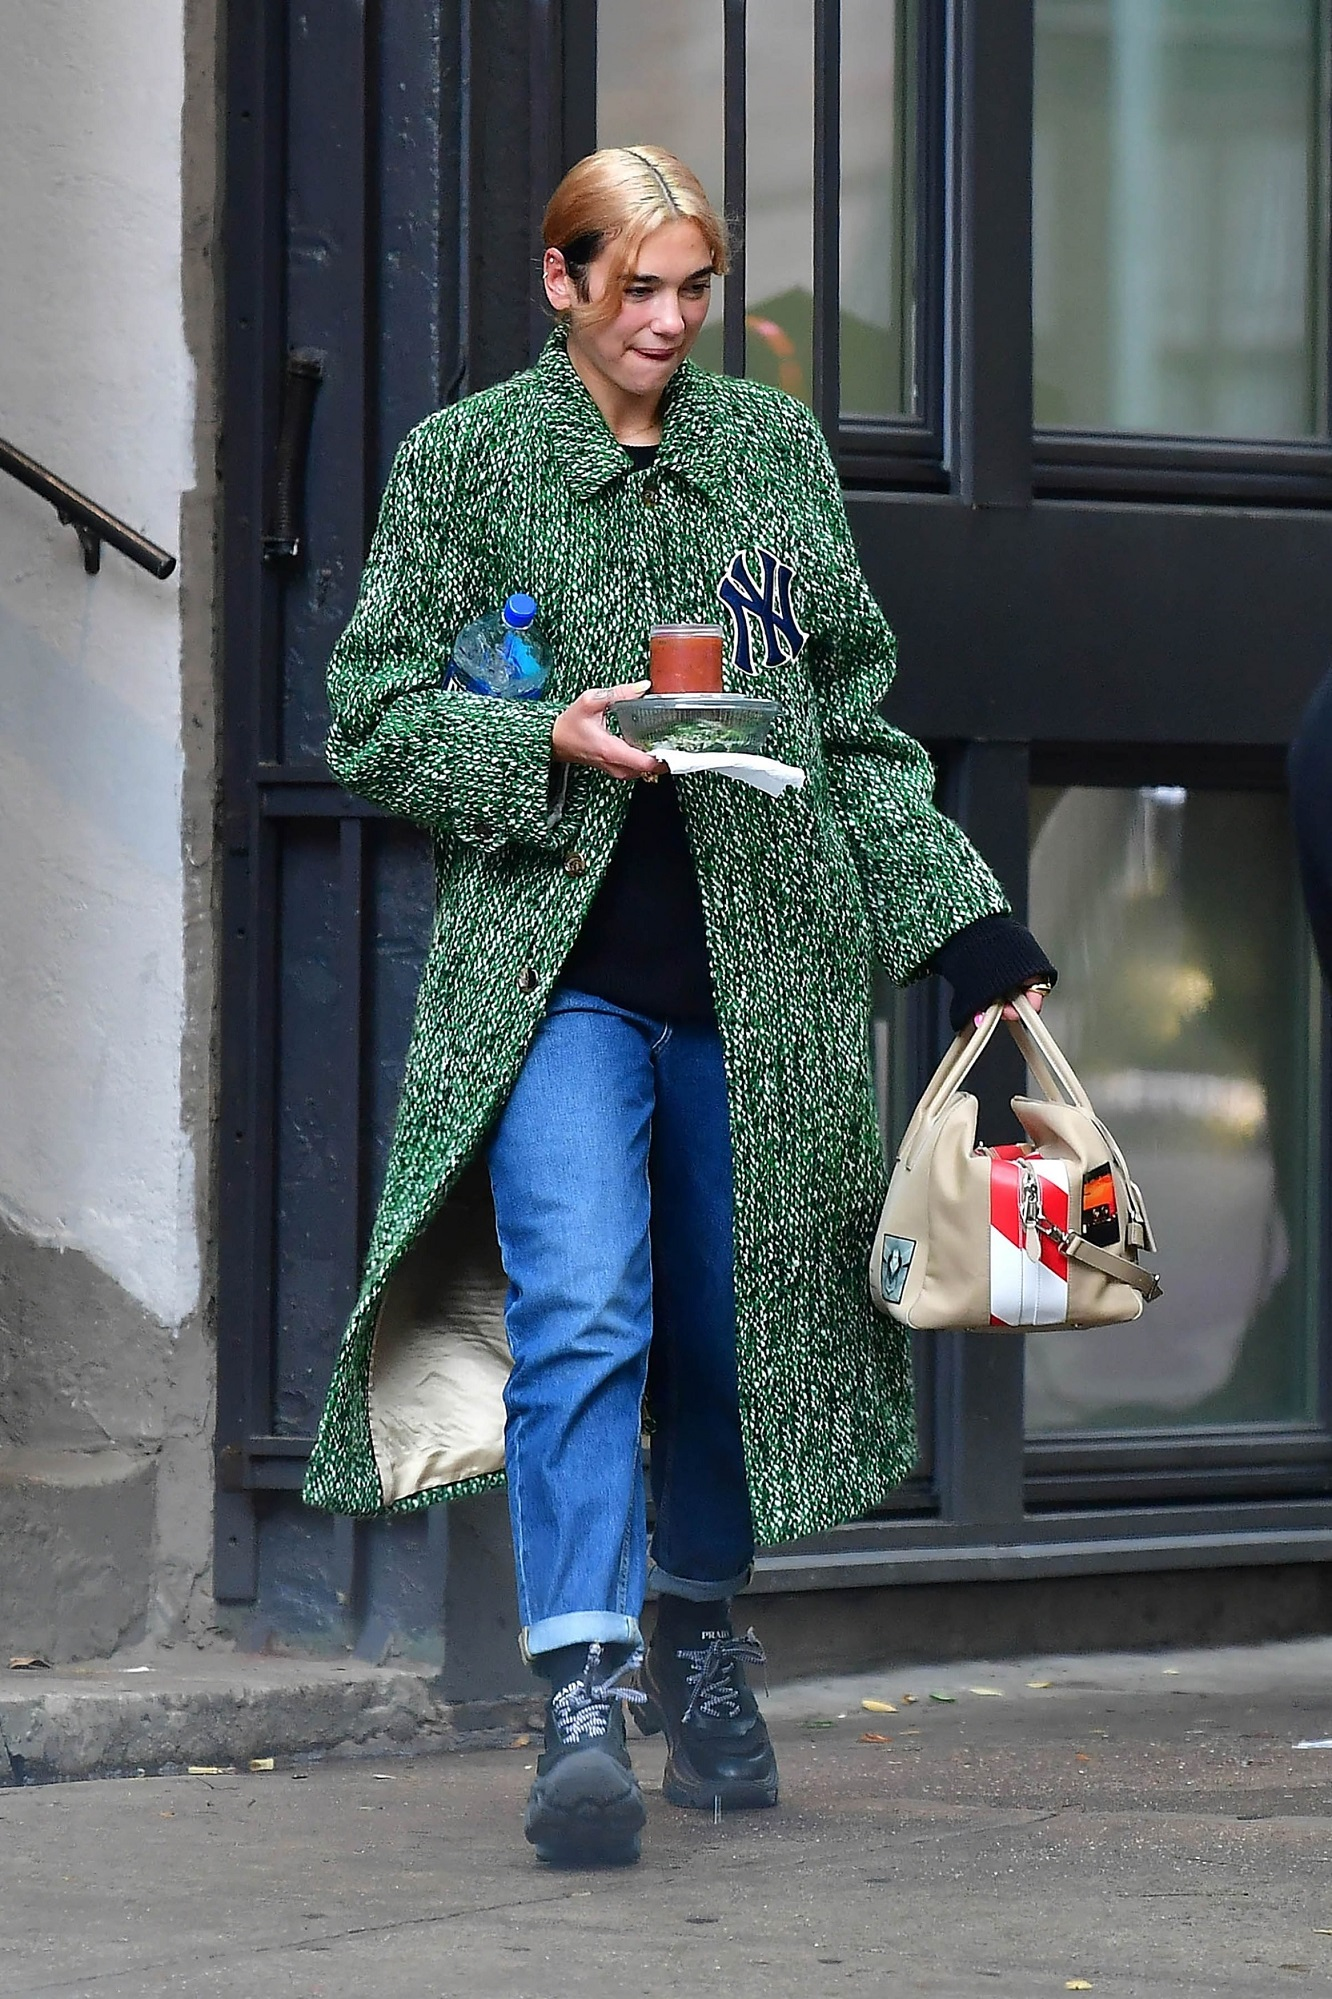 New York, Ny  - Dua Lipa wearing a green coat with NY knicks logo and carrying her own food  BACKGRID USA 3 OCTOBER 2019, Image: 475048313, License: Rights-managed, Restrictions: RIGHTS: WORLDWIDE EXCEPT IN FRANCE, GERMANY, POLAND, Model Release: no, Credit line: Skyler2018 / BACKGRID / Backgrid USA / Profimedia